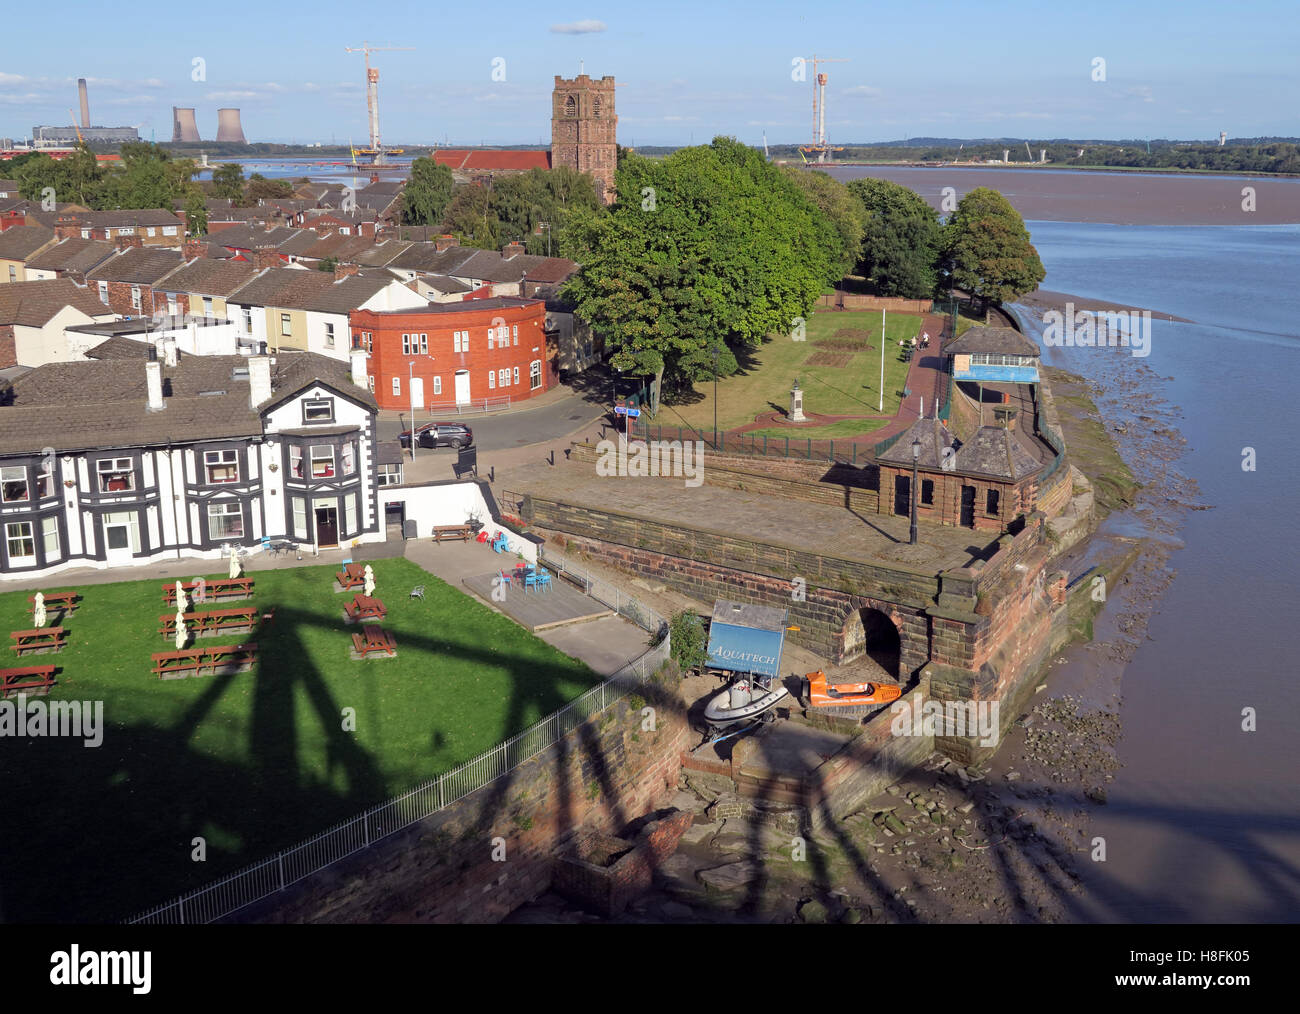 GoTonySmith,@HotpixUK,Tony,Smith,UK,GB,Great,Britain,United,Kingdom,English,British,England,problem,with,problem with,issue with,Buy Pictures of,Buy Images Of,Images of,Stock Images,Tony Smith,United Kingdom,Great Britain,British Isles,West Bank,View from bridge,summer,building,estate,housing,West Bank Dock,Chemical works,dock,Victorian,industry,dockside,dock side